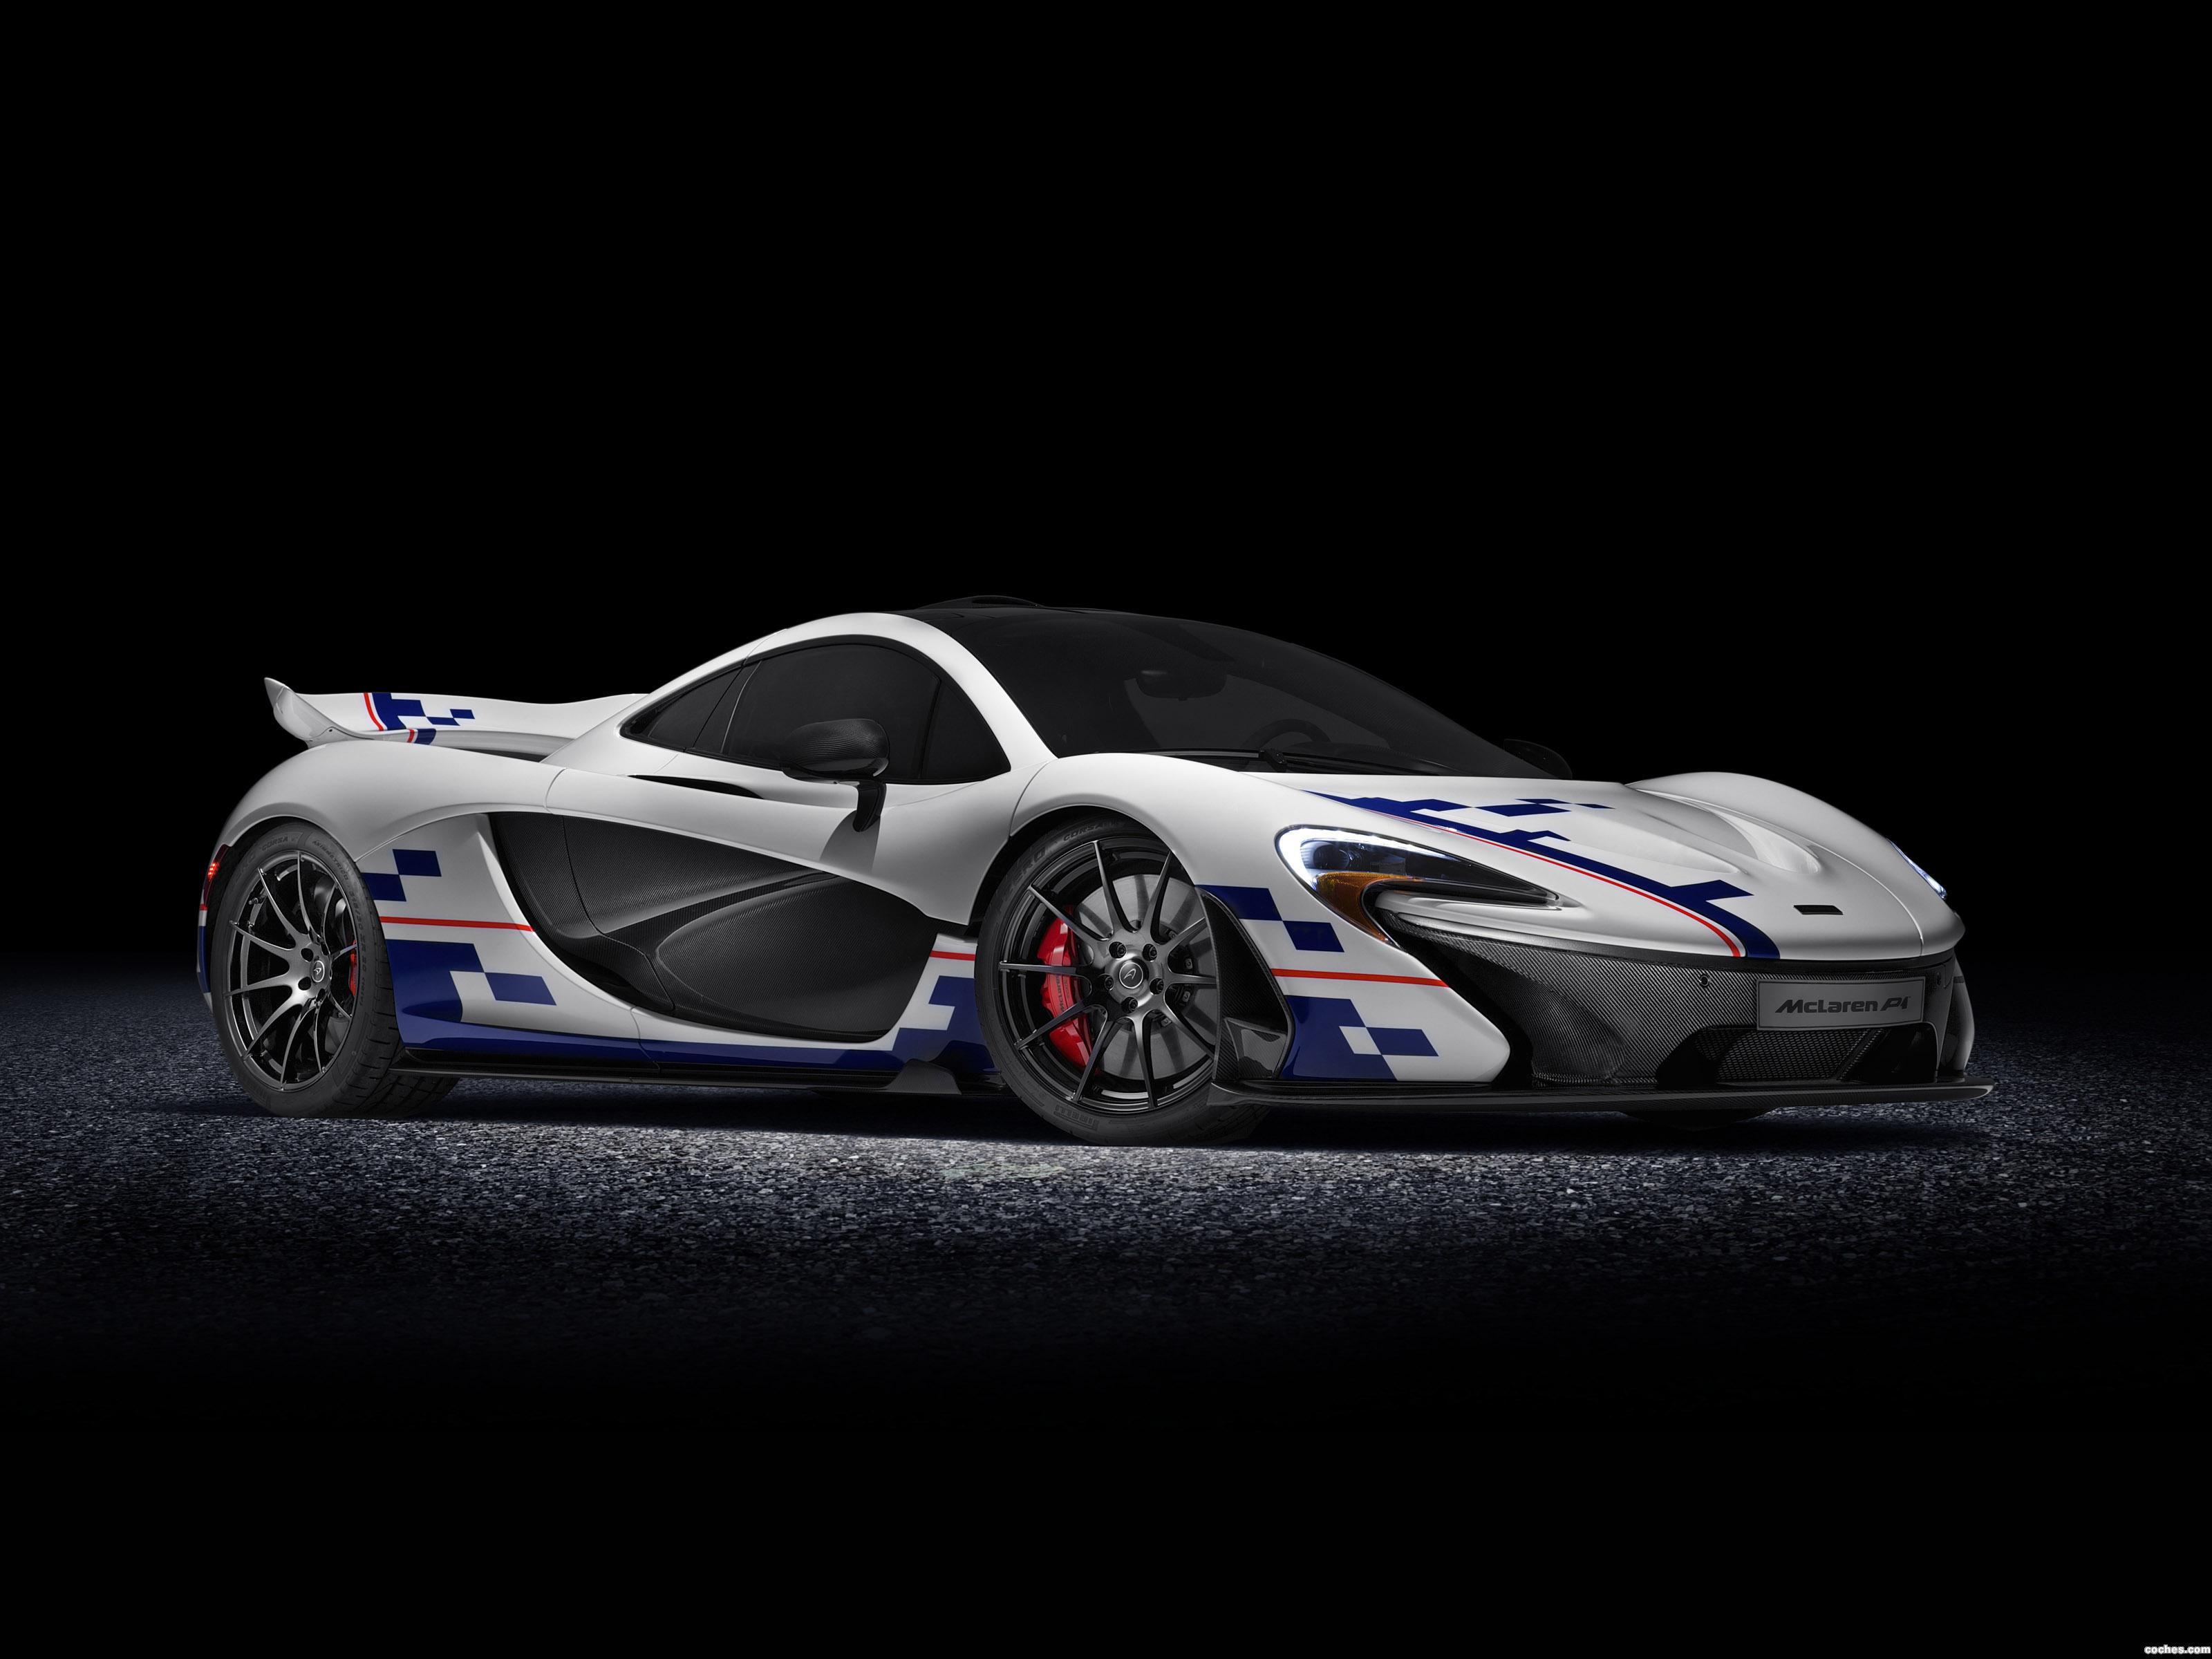 mclaren_p1-mso-inspired-by-alain-prost-2015_r6